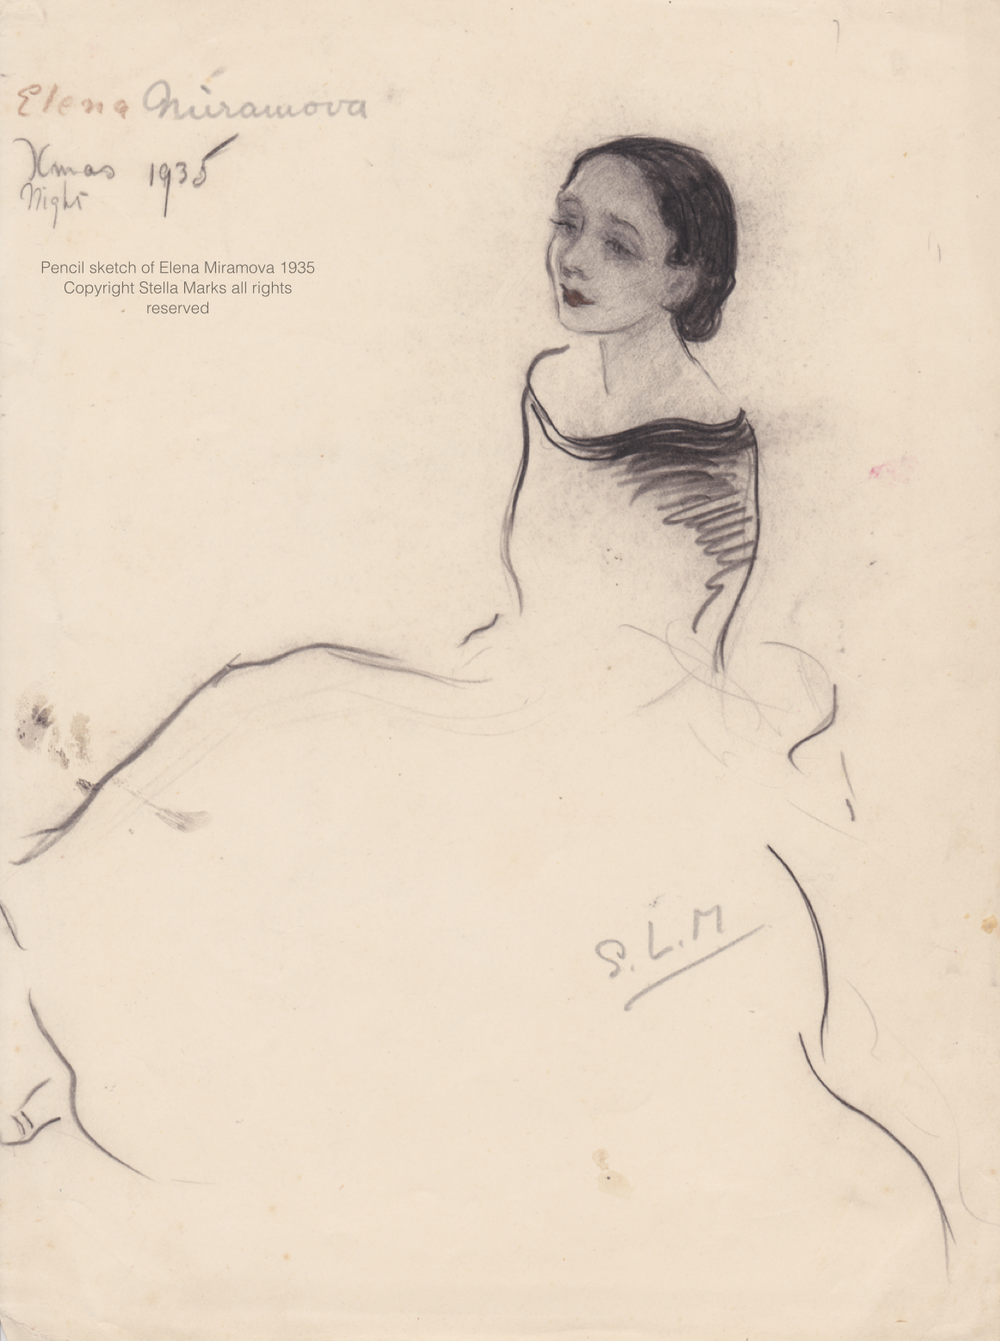 Stella Marks' pencil sketch of Elena MiRAmova 1935. CopyriGHT Stella Marks Estate. All Rights Reserved